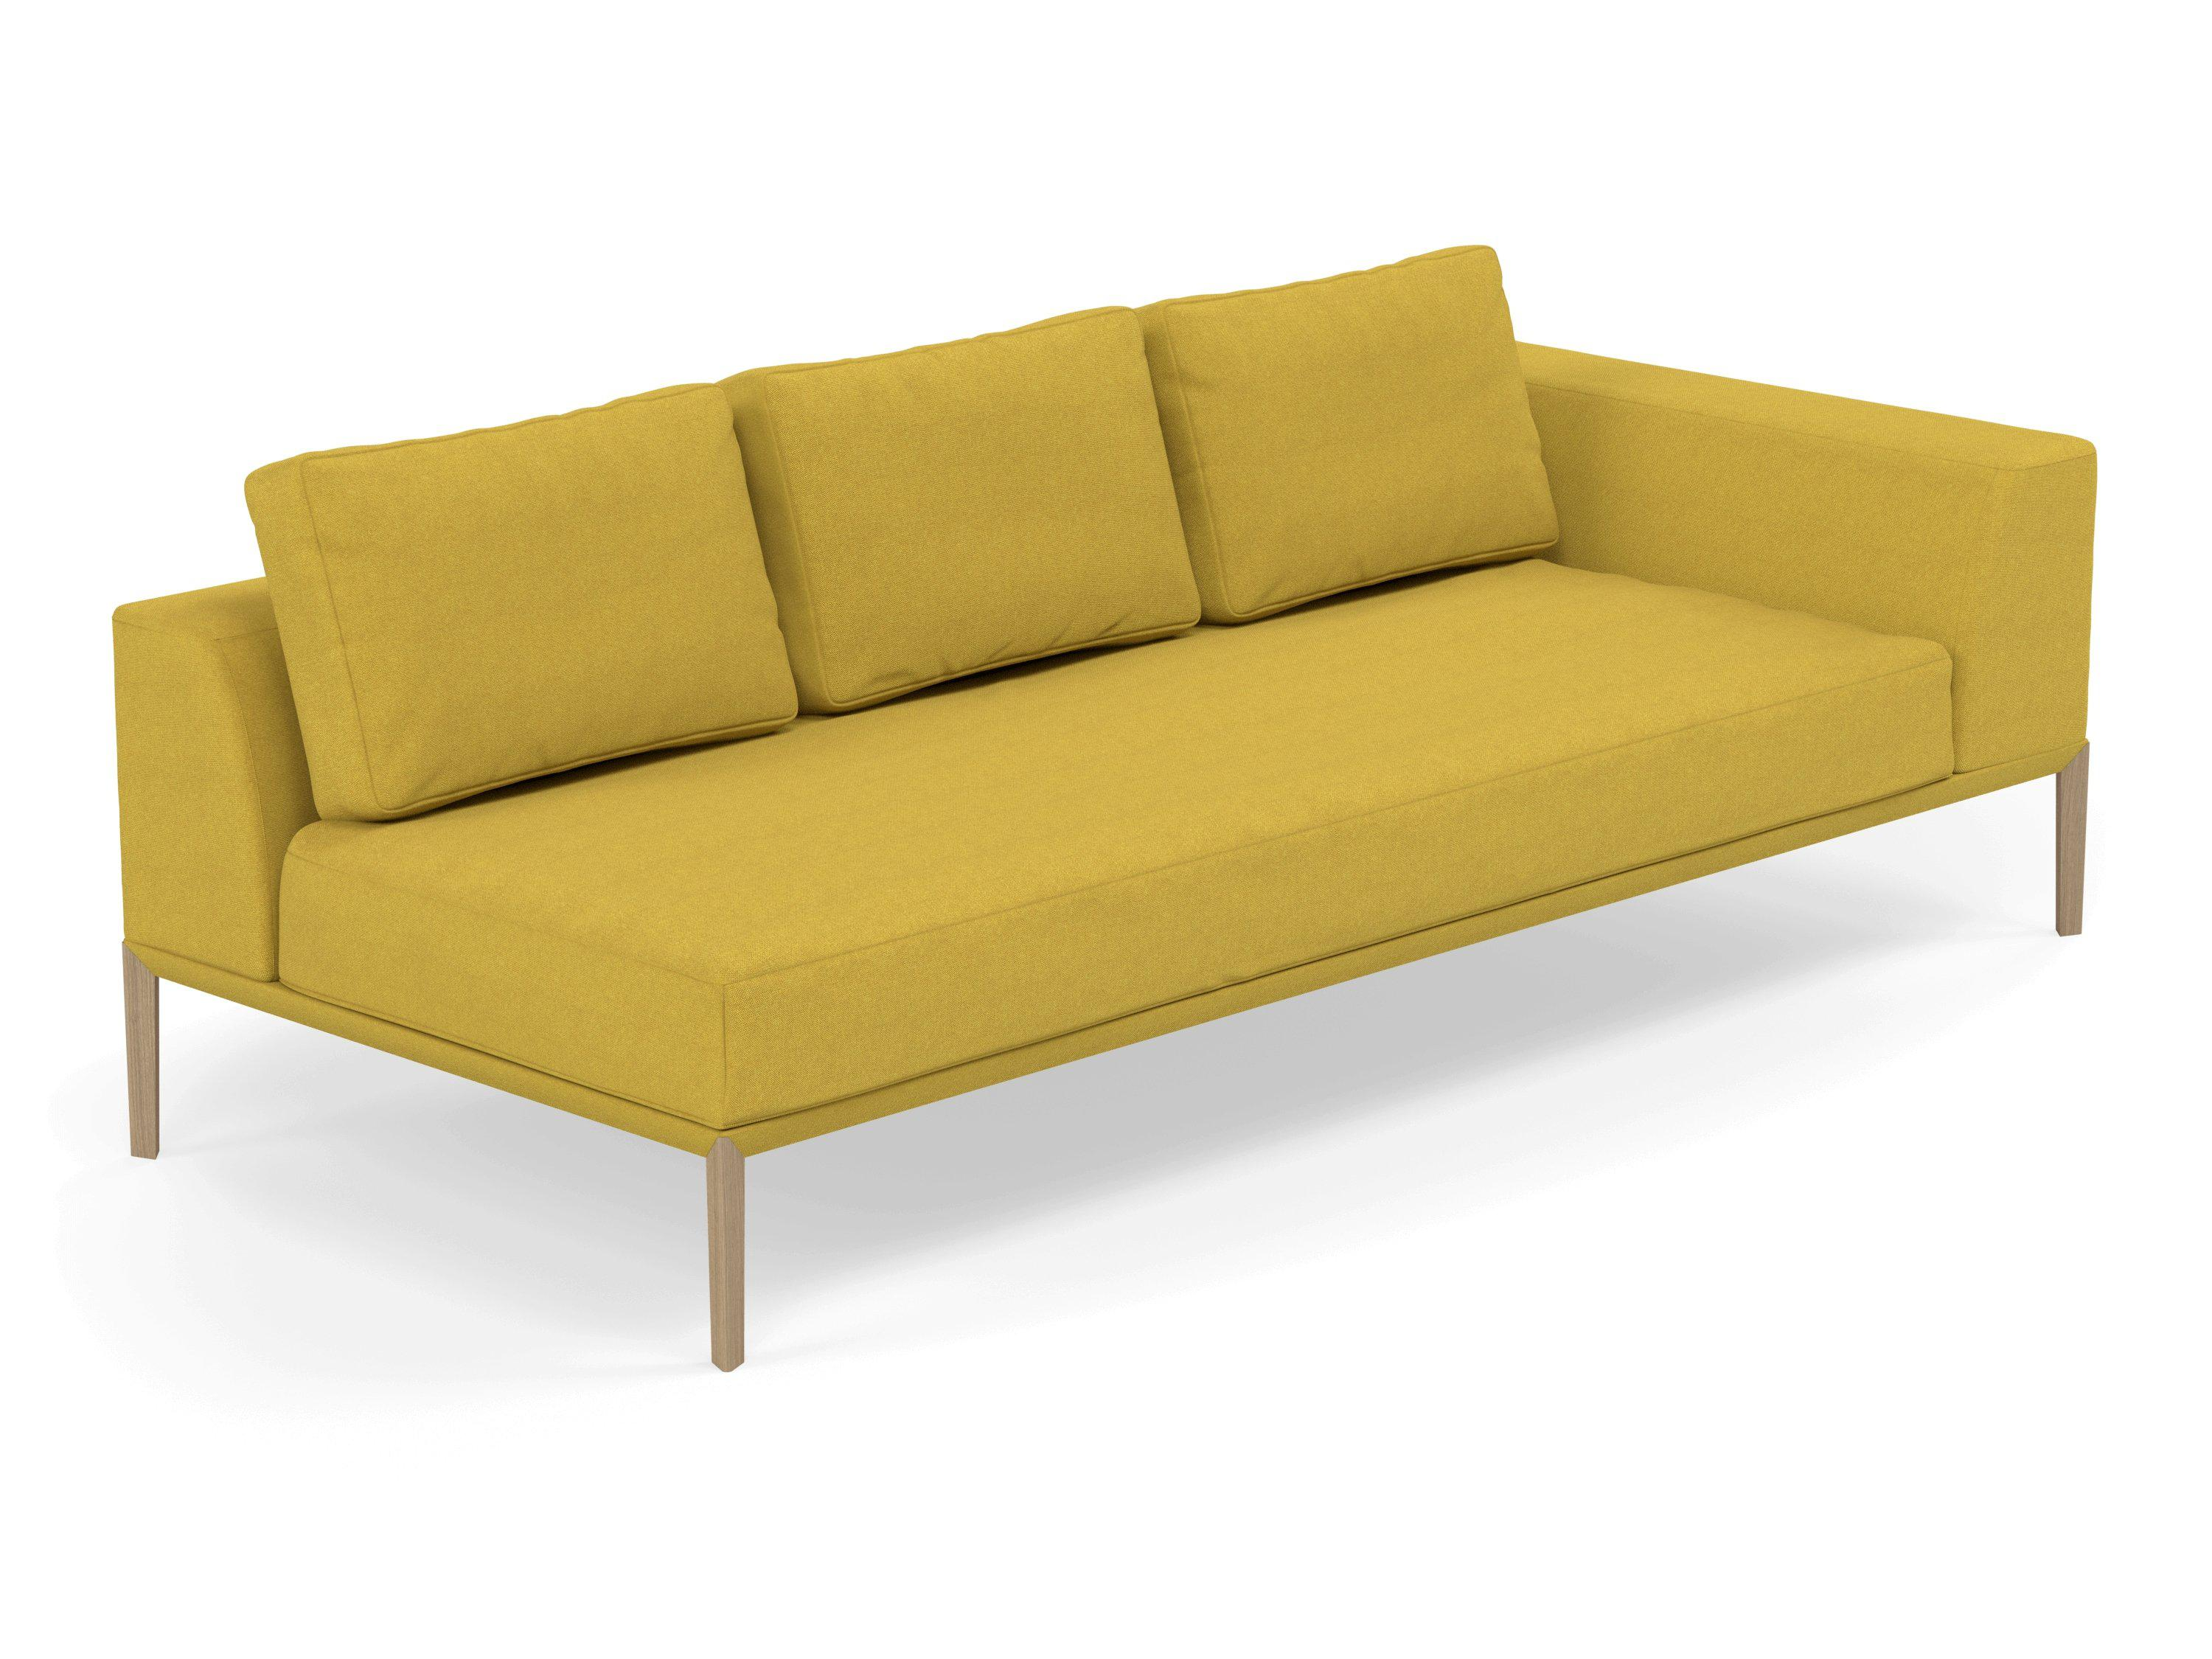 Incredible Modern 3 Seater Chaise Lounge Style Sofa With Left Armrest In Vibrant Mustard Fabric Theyellowbook Wood Chair Design Ideas Theyellowbookinfo